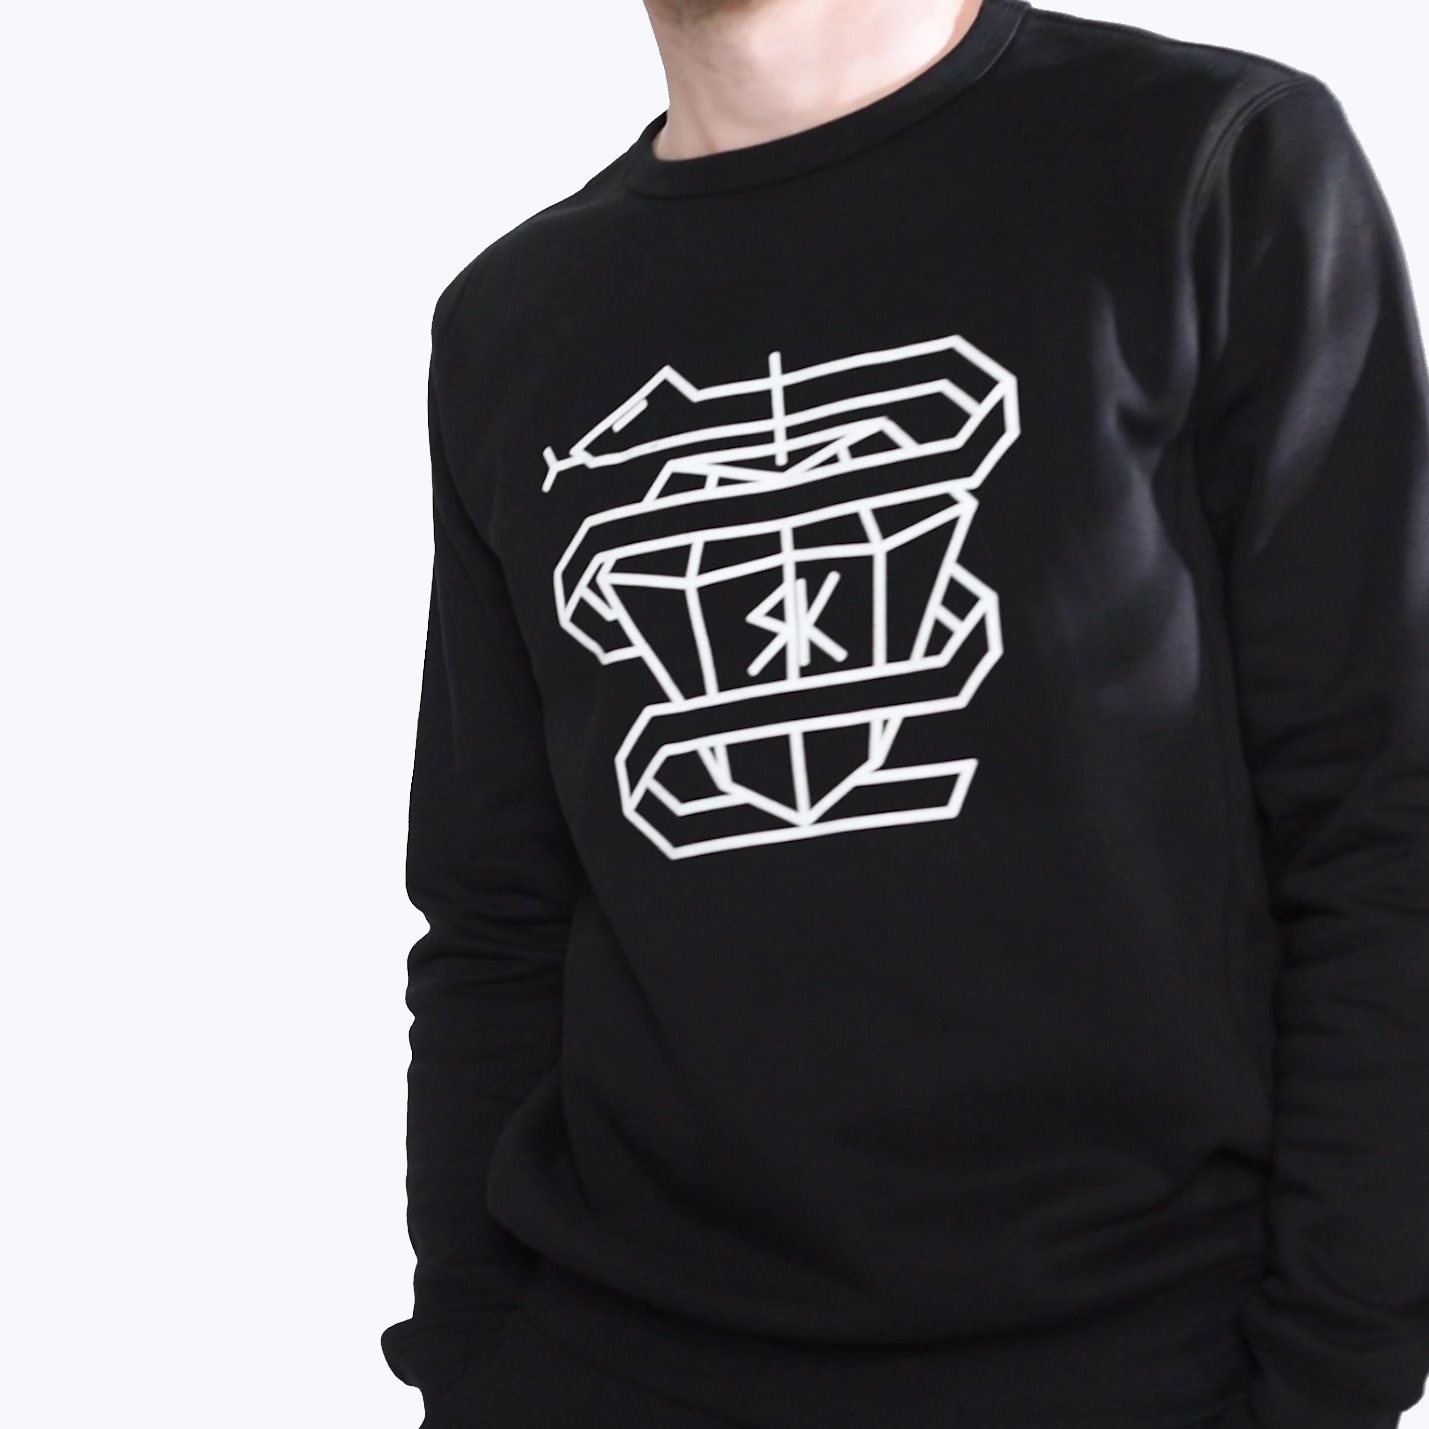 IT'S KALINKIN JUMPER - BLACK, UNISEX